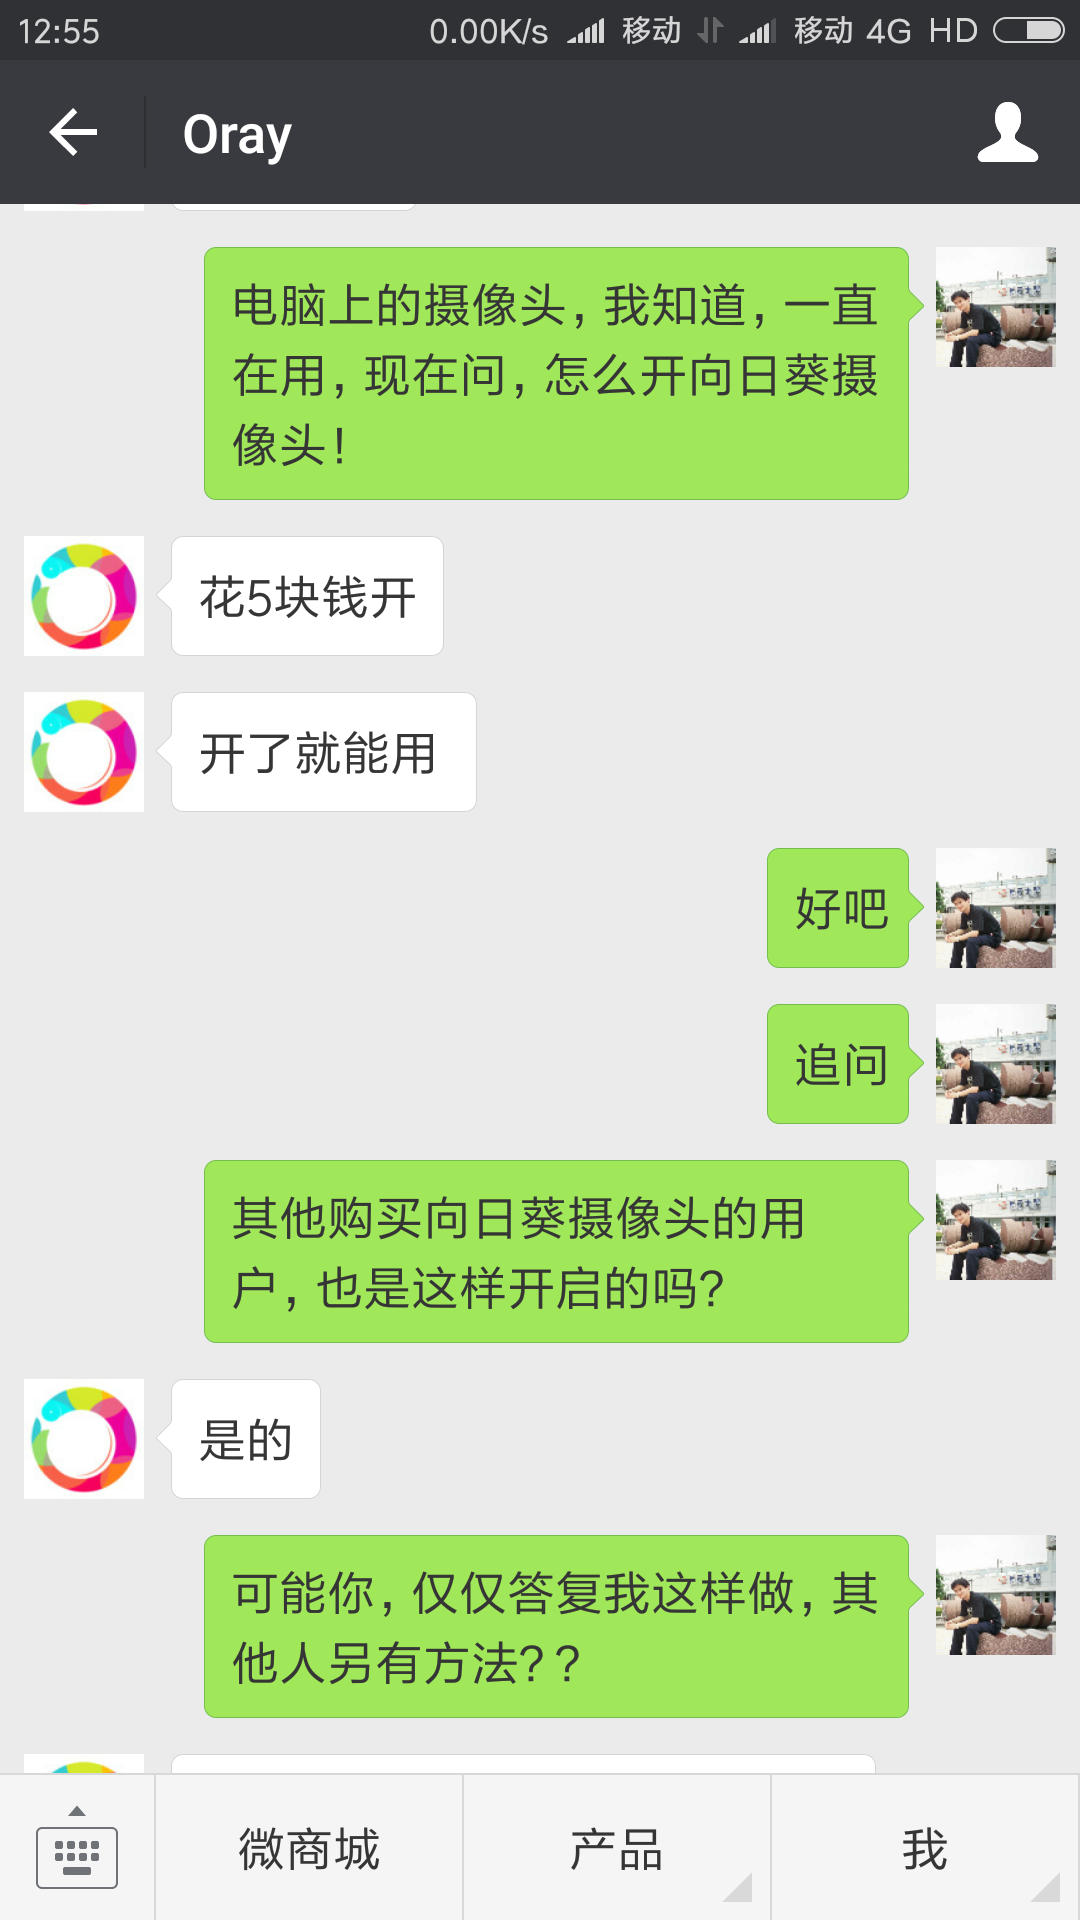 Screenshot_2016-10-11-12-55-35-620_com.tencent.mm.png